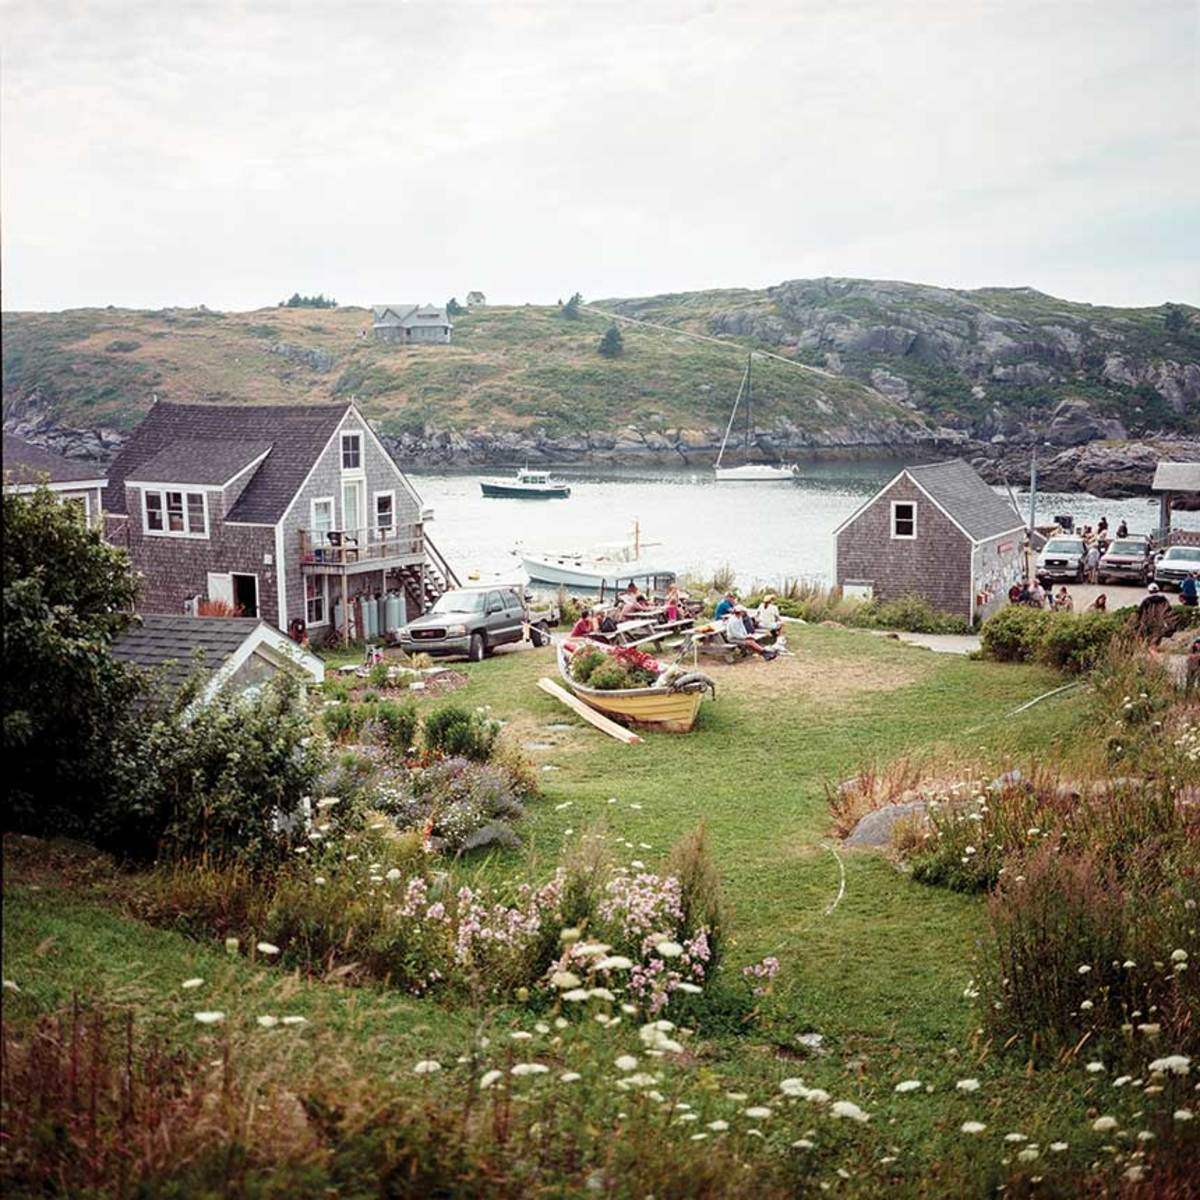 Life on Monhegan Island is centered around its lovely harbor. A short walk from the village, and you can be all alone.